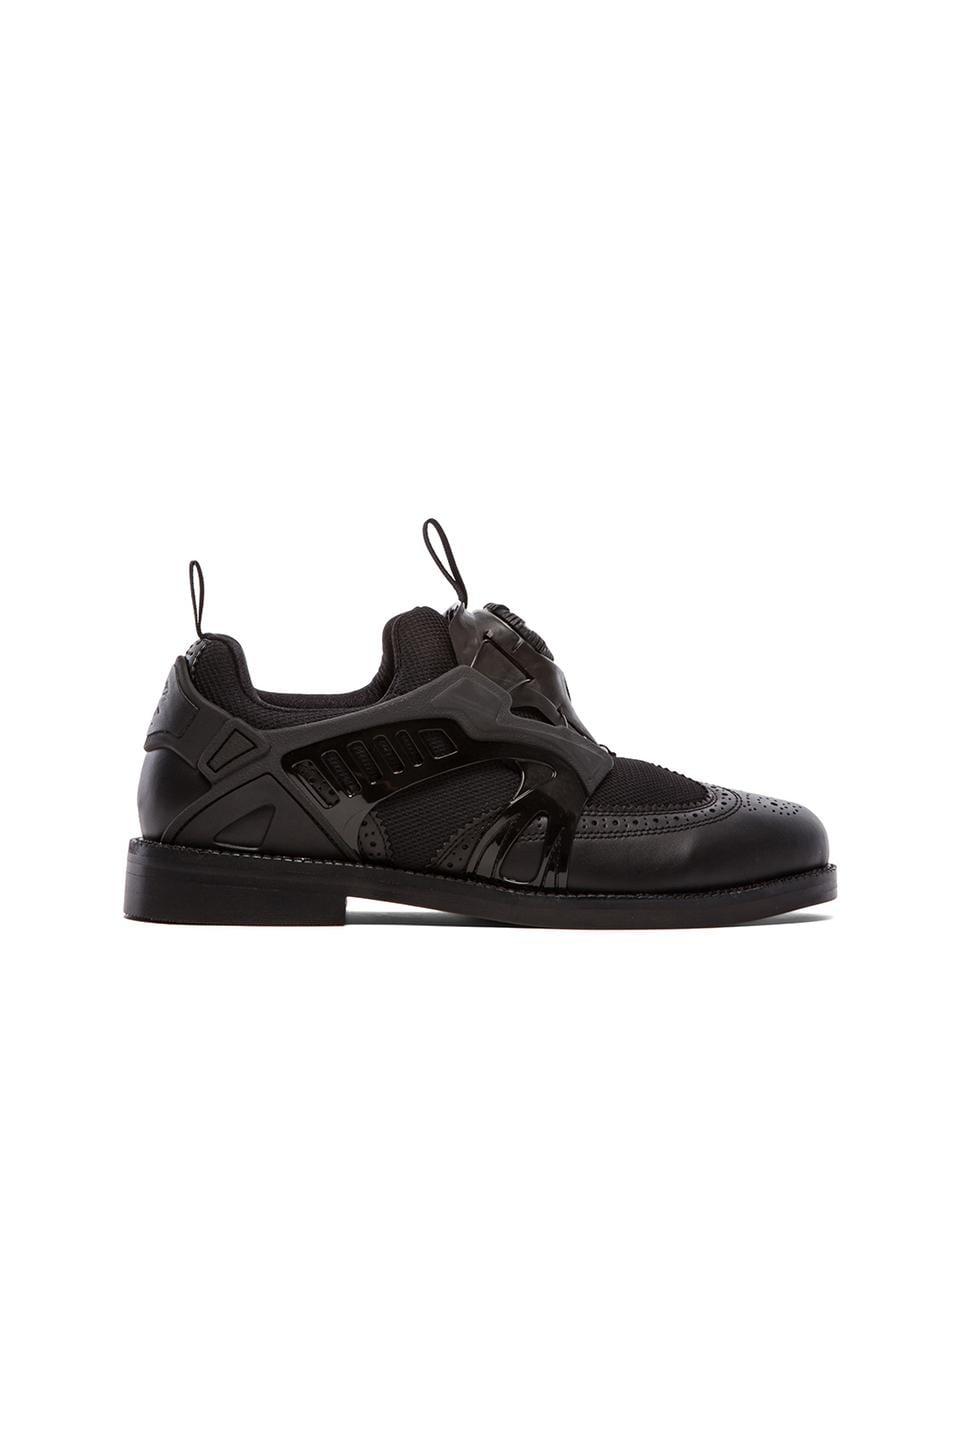 Puma by Mihara MY-72 in Black